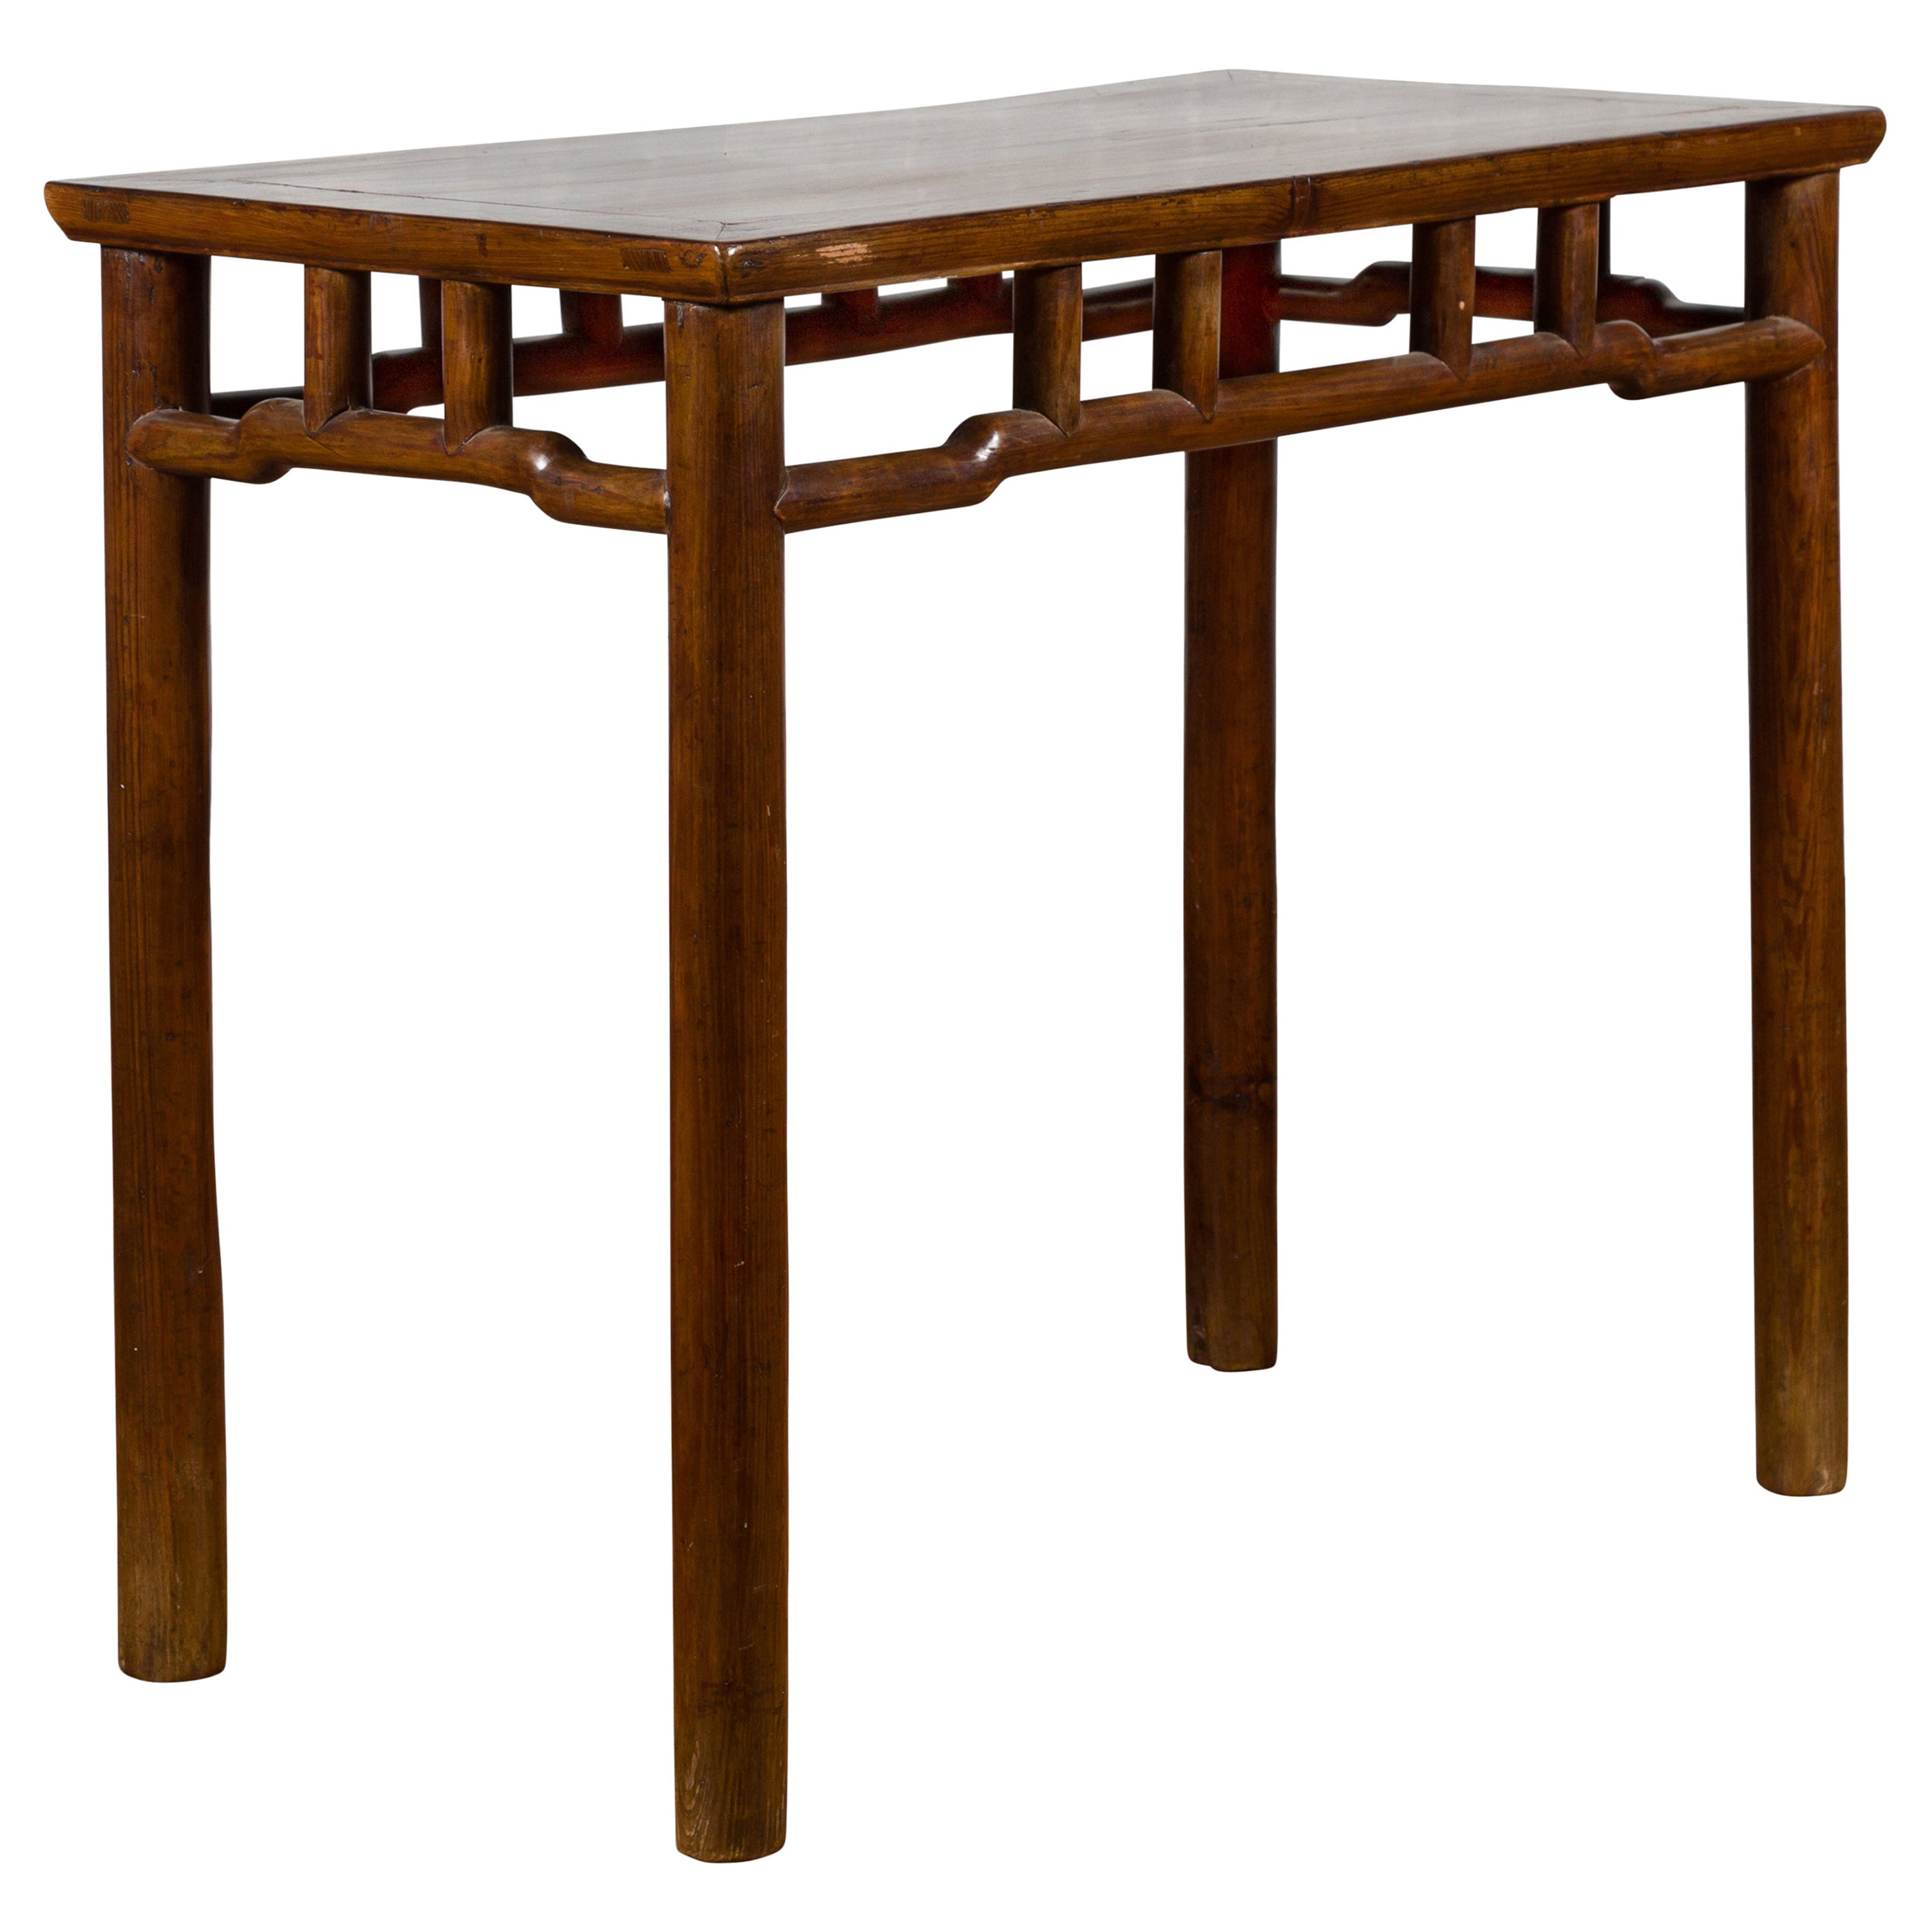 Chinese Qing Dynasty Elm Console Table with Pillar Struts and Humpbacked Apron